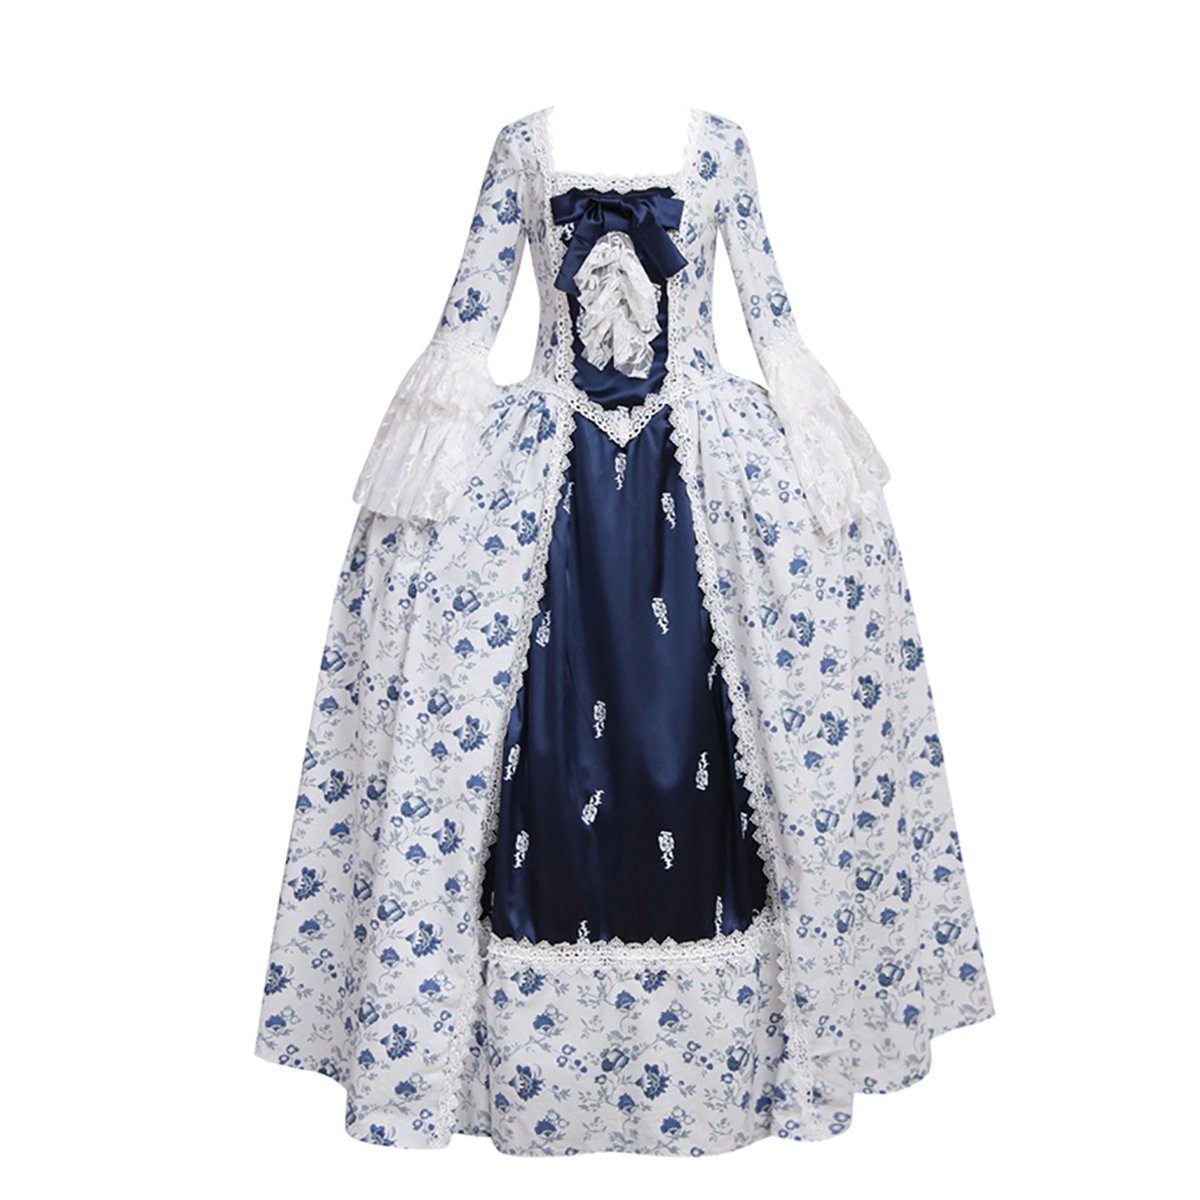 1791's lady Women's Victorian Rococo Dress Inspration Maiden Costume NQ0032-XS by 1791's lady (Image #2)